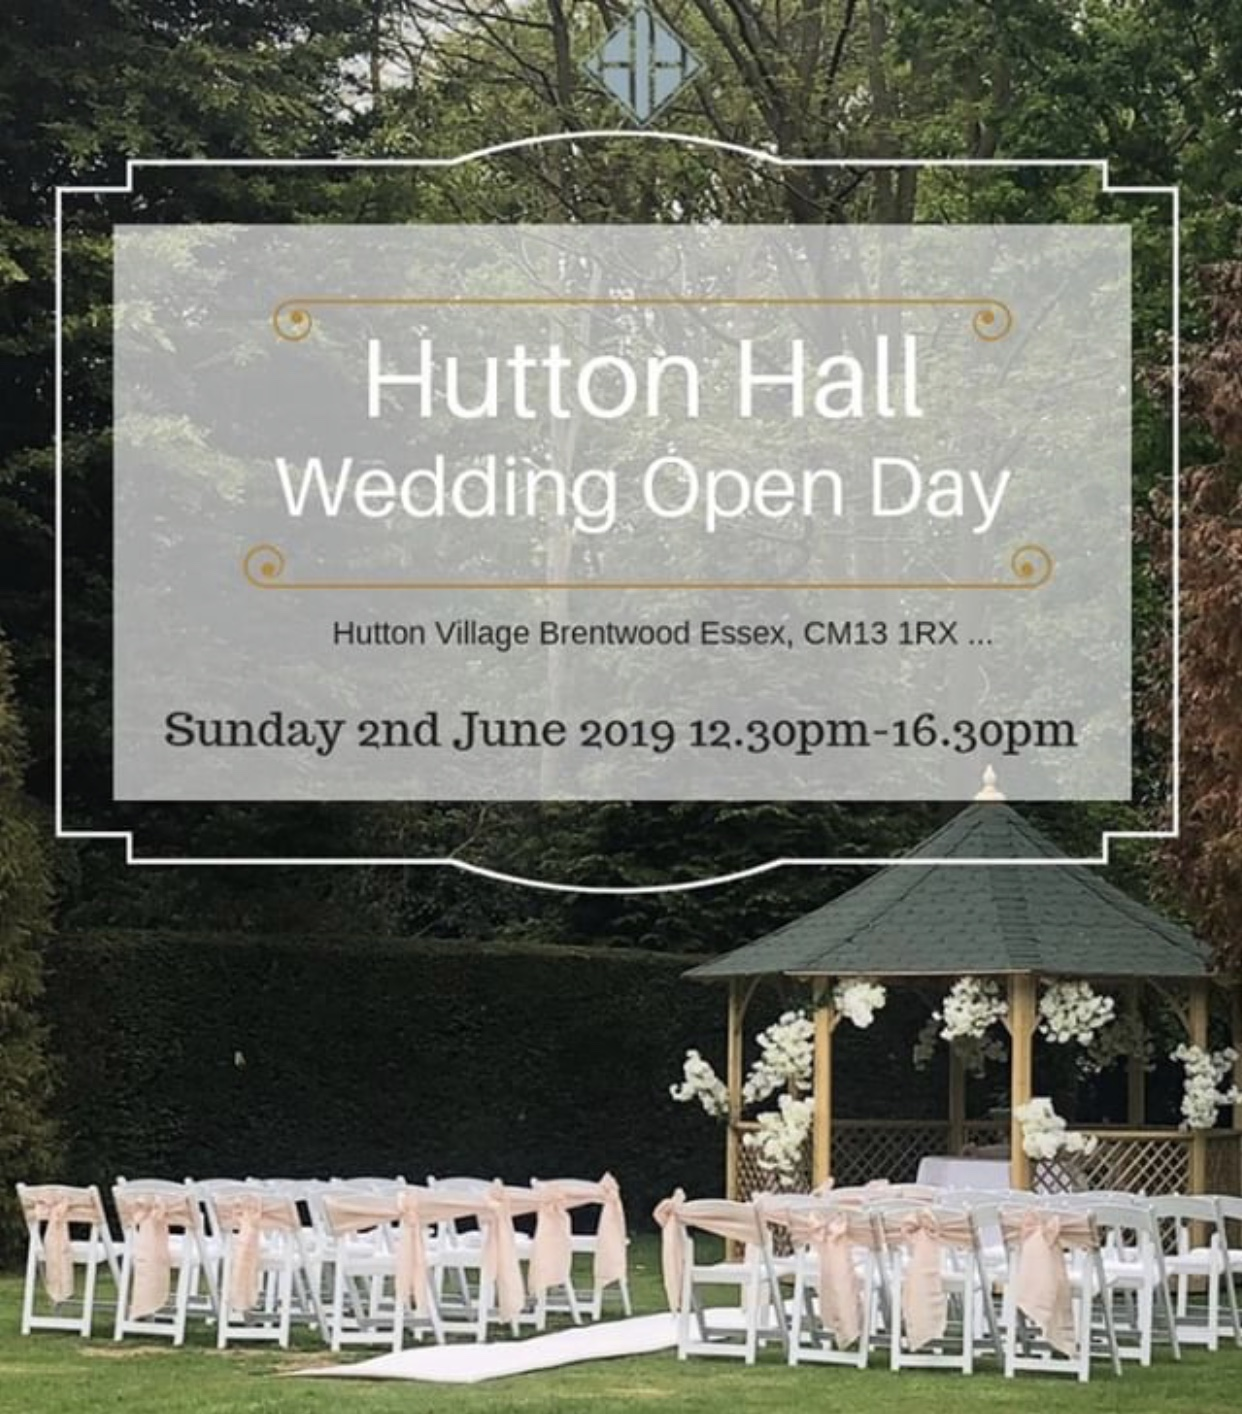 gavin conlan photography has been proudly invited to exhibit this Sunday at the exclusive Essex based wedding venue Hutton Hall. The Wedding Open Day starts at 12:30Pm and finishes at 16:30PM.